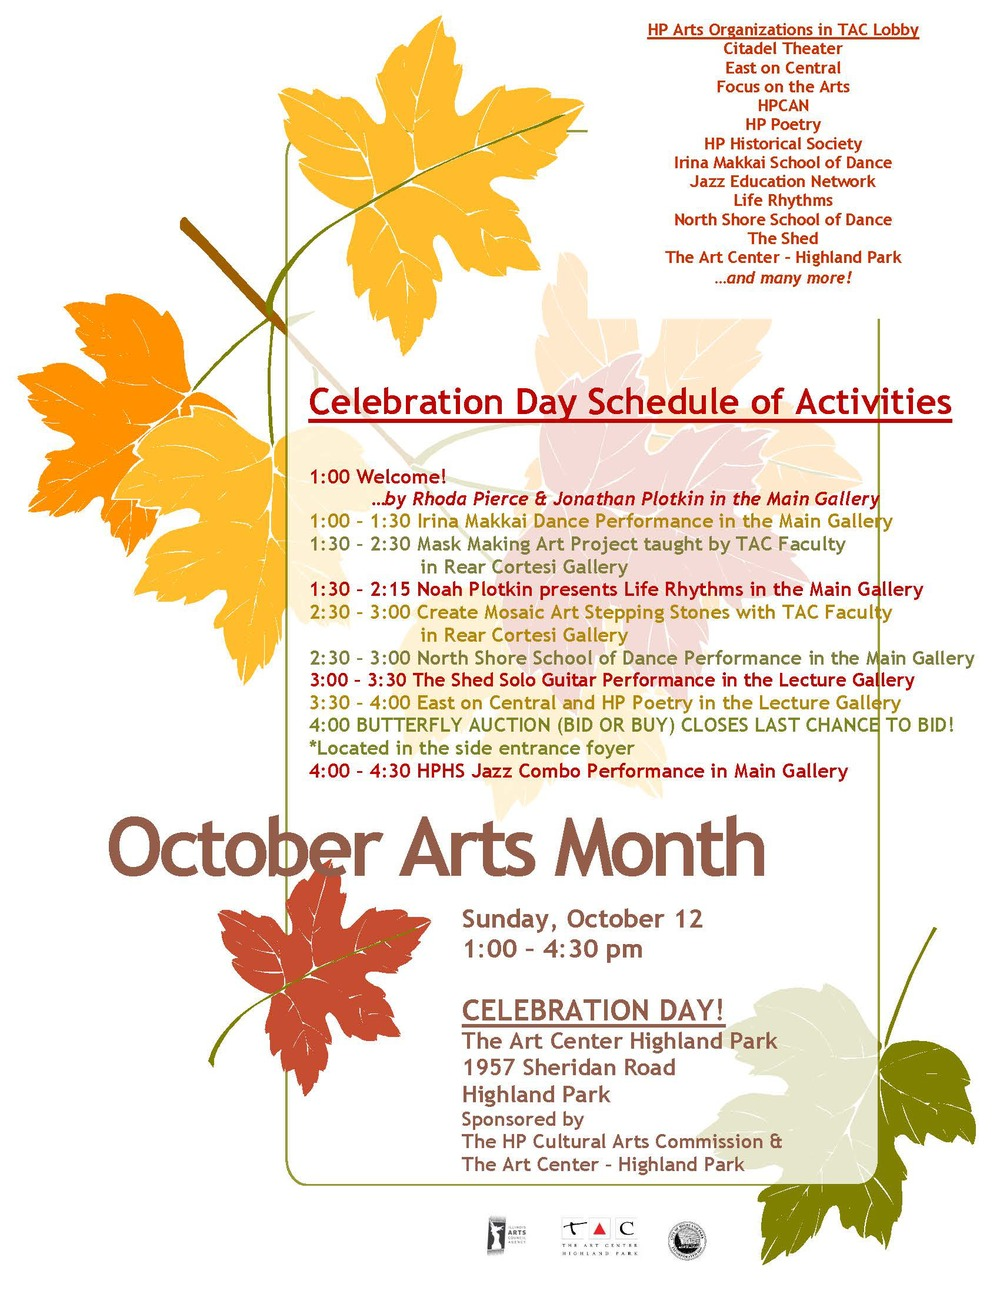 http://www.theartcenterhp.org/event/hp-arts-month-celebration-day